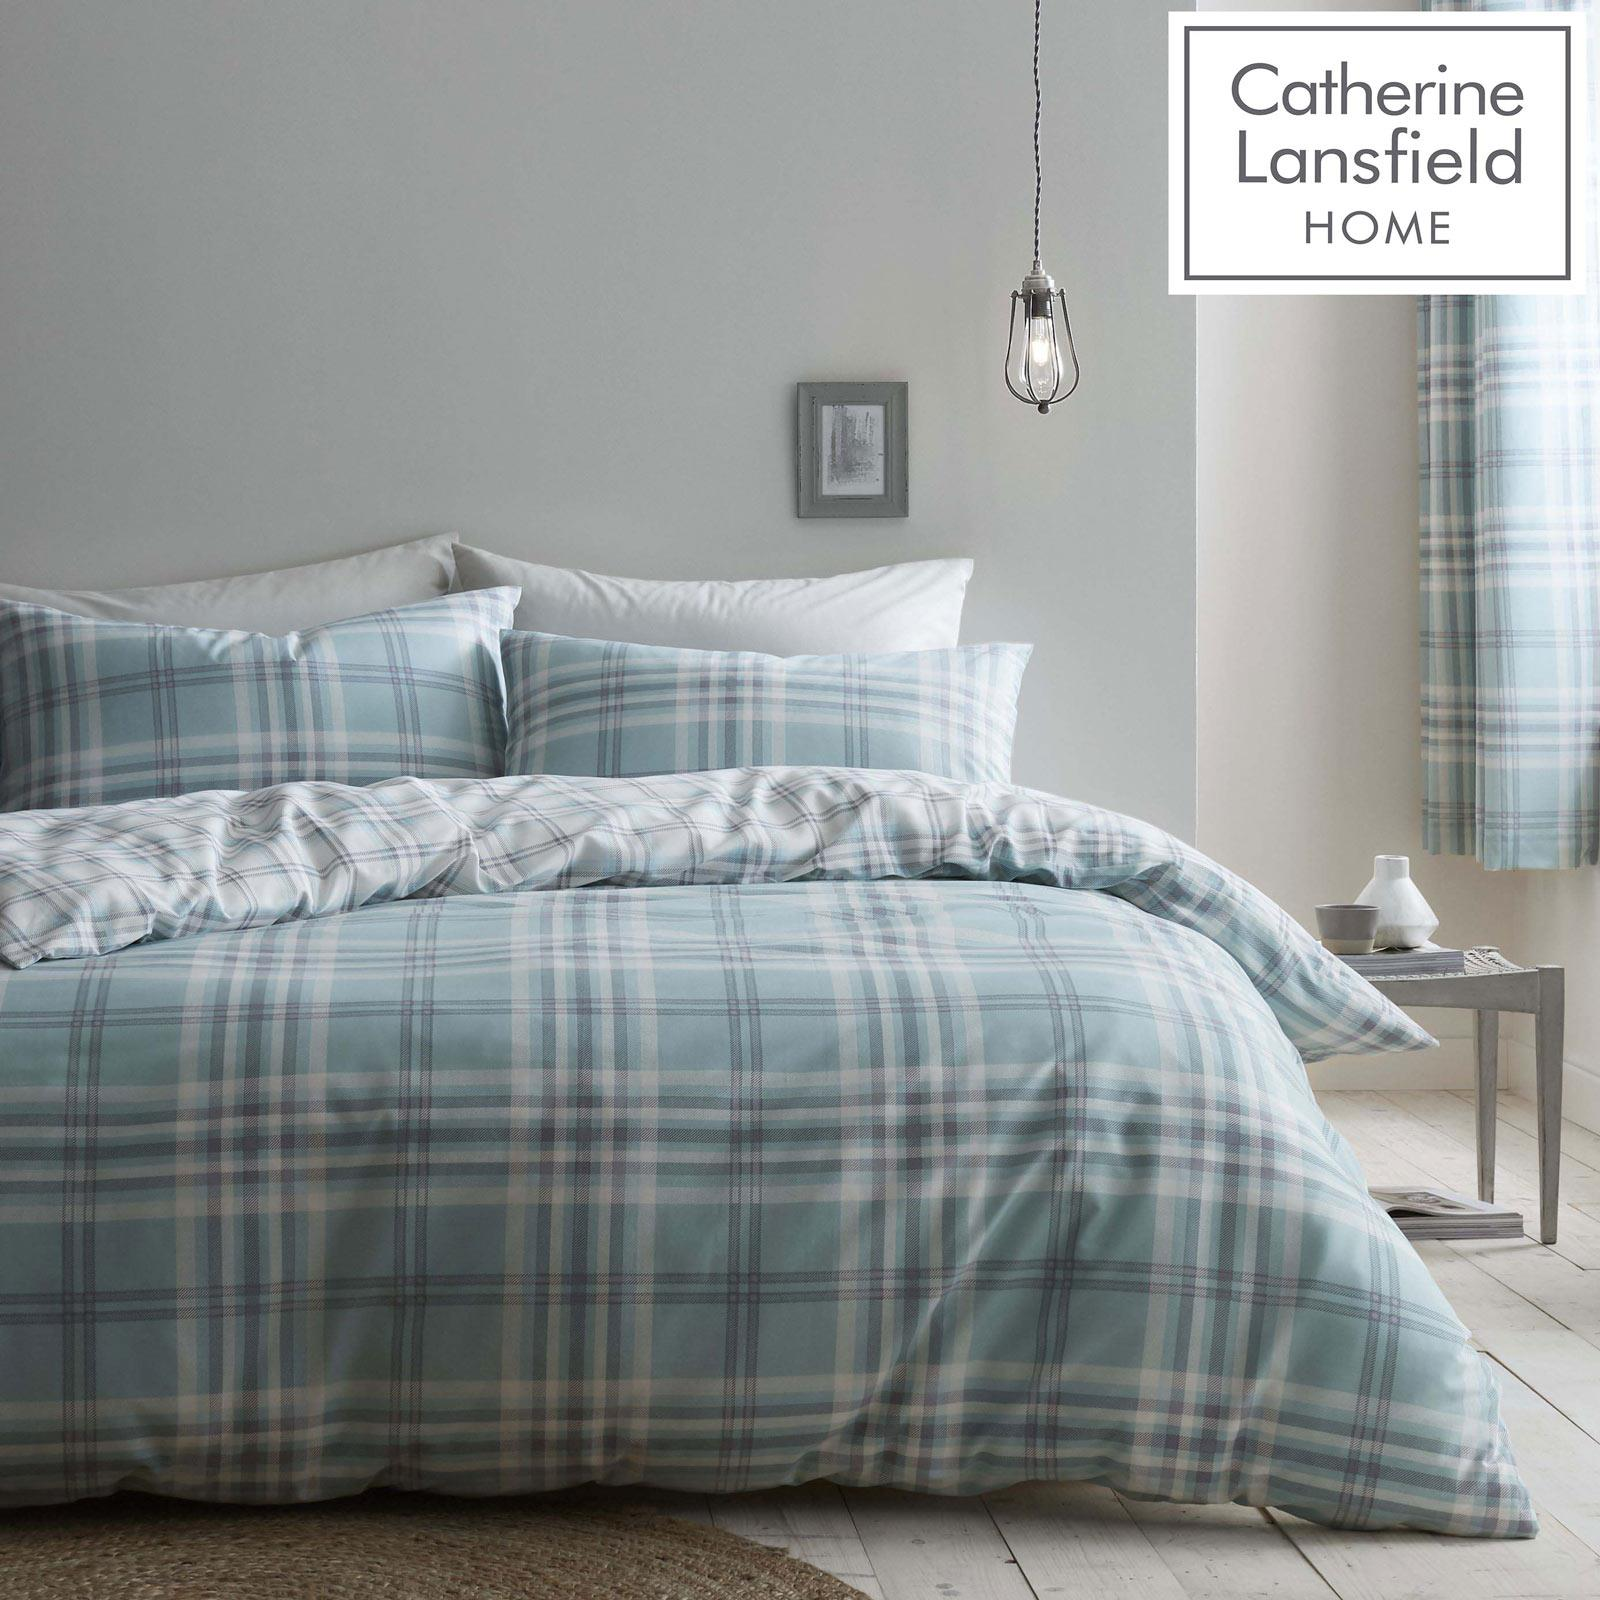 Catherine Lansfield Kelso Mint Duvet Covers Tartan Checked Quilt Bedding Sets Ebay